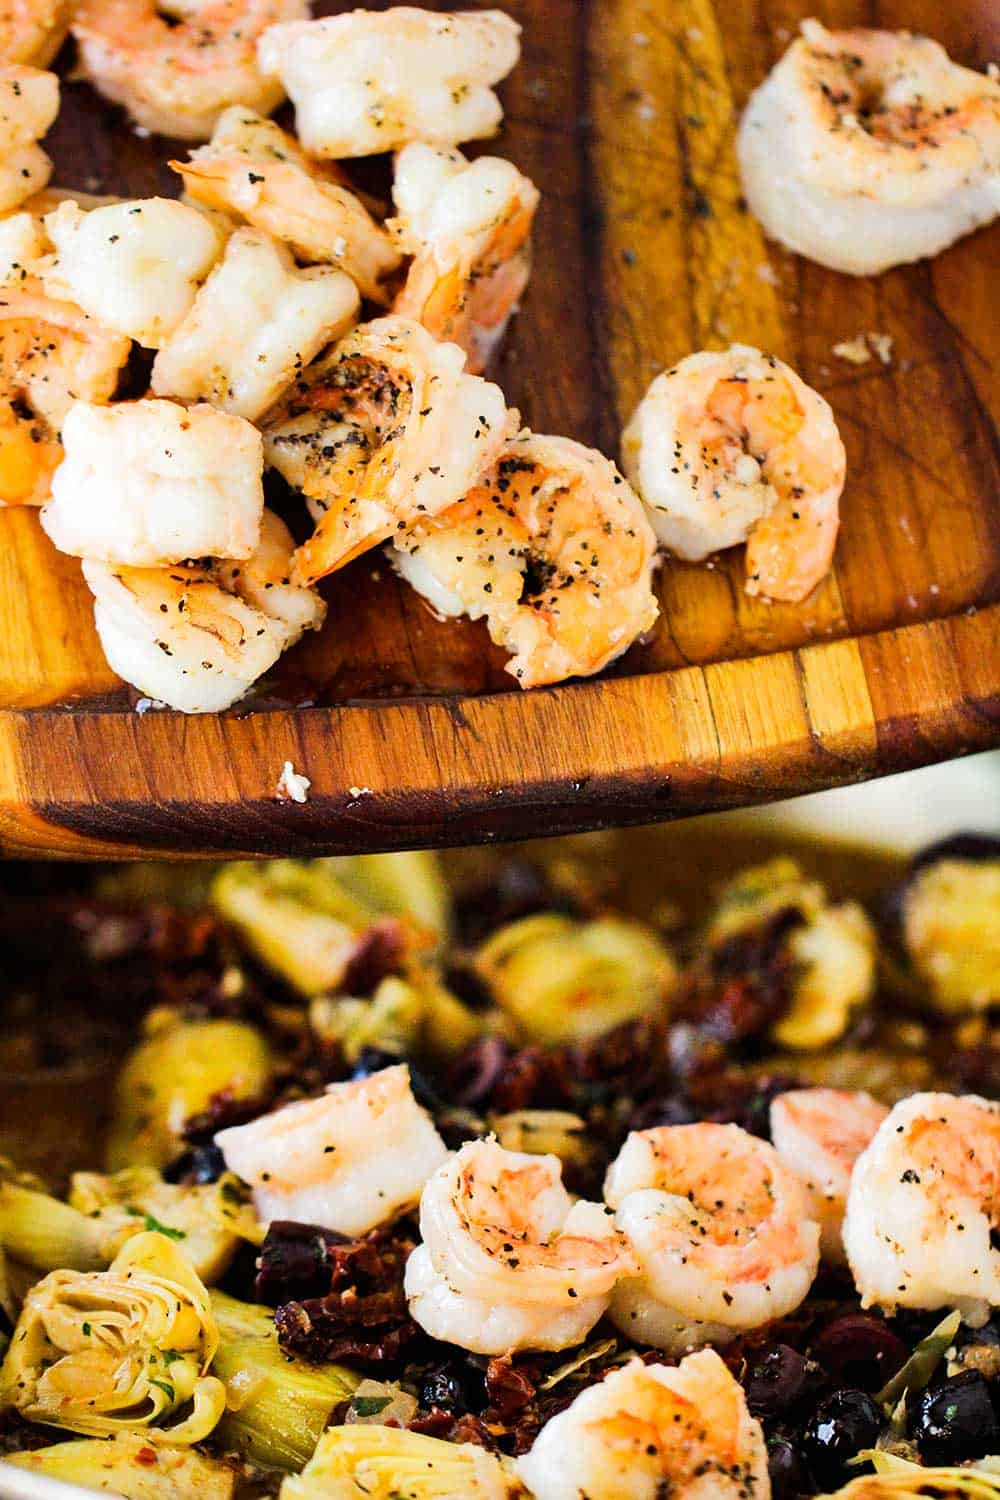 Seared shrimp falling from a wooden cutting board into a pan of cooked artichokes and olives.